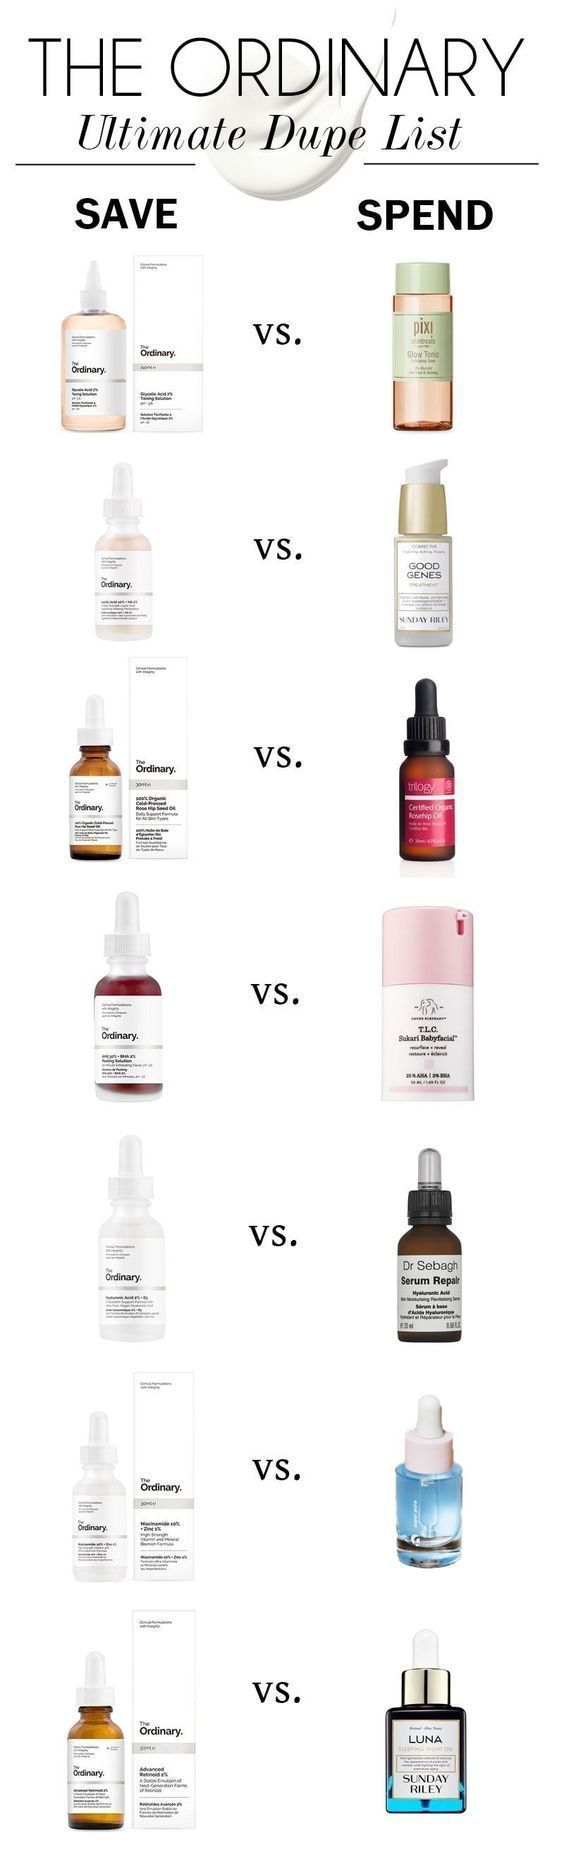 The Ordinary Ultimate Dupe List